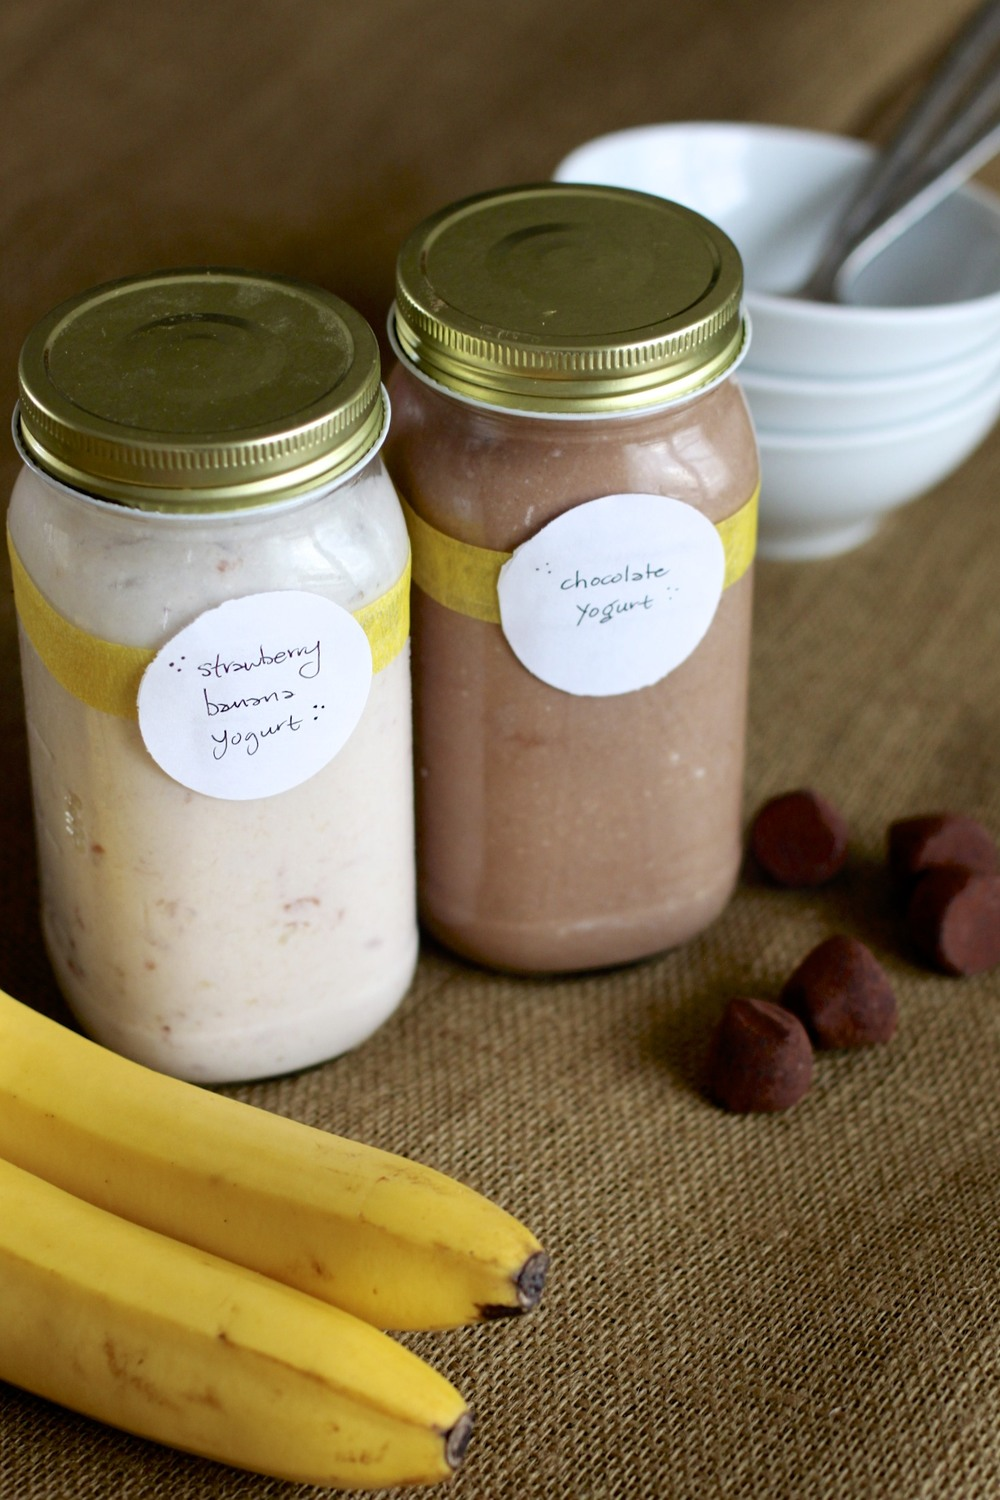 low carb/paleo kids: strawberry banana yogurt & chocolate yogurt